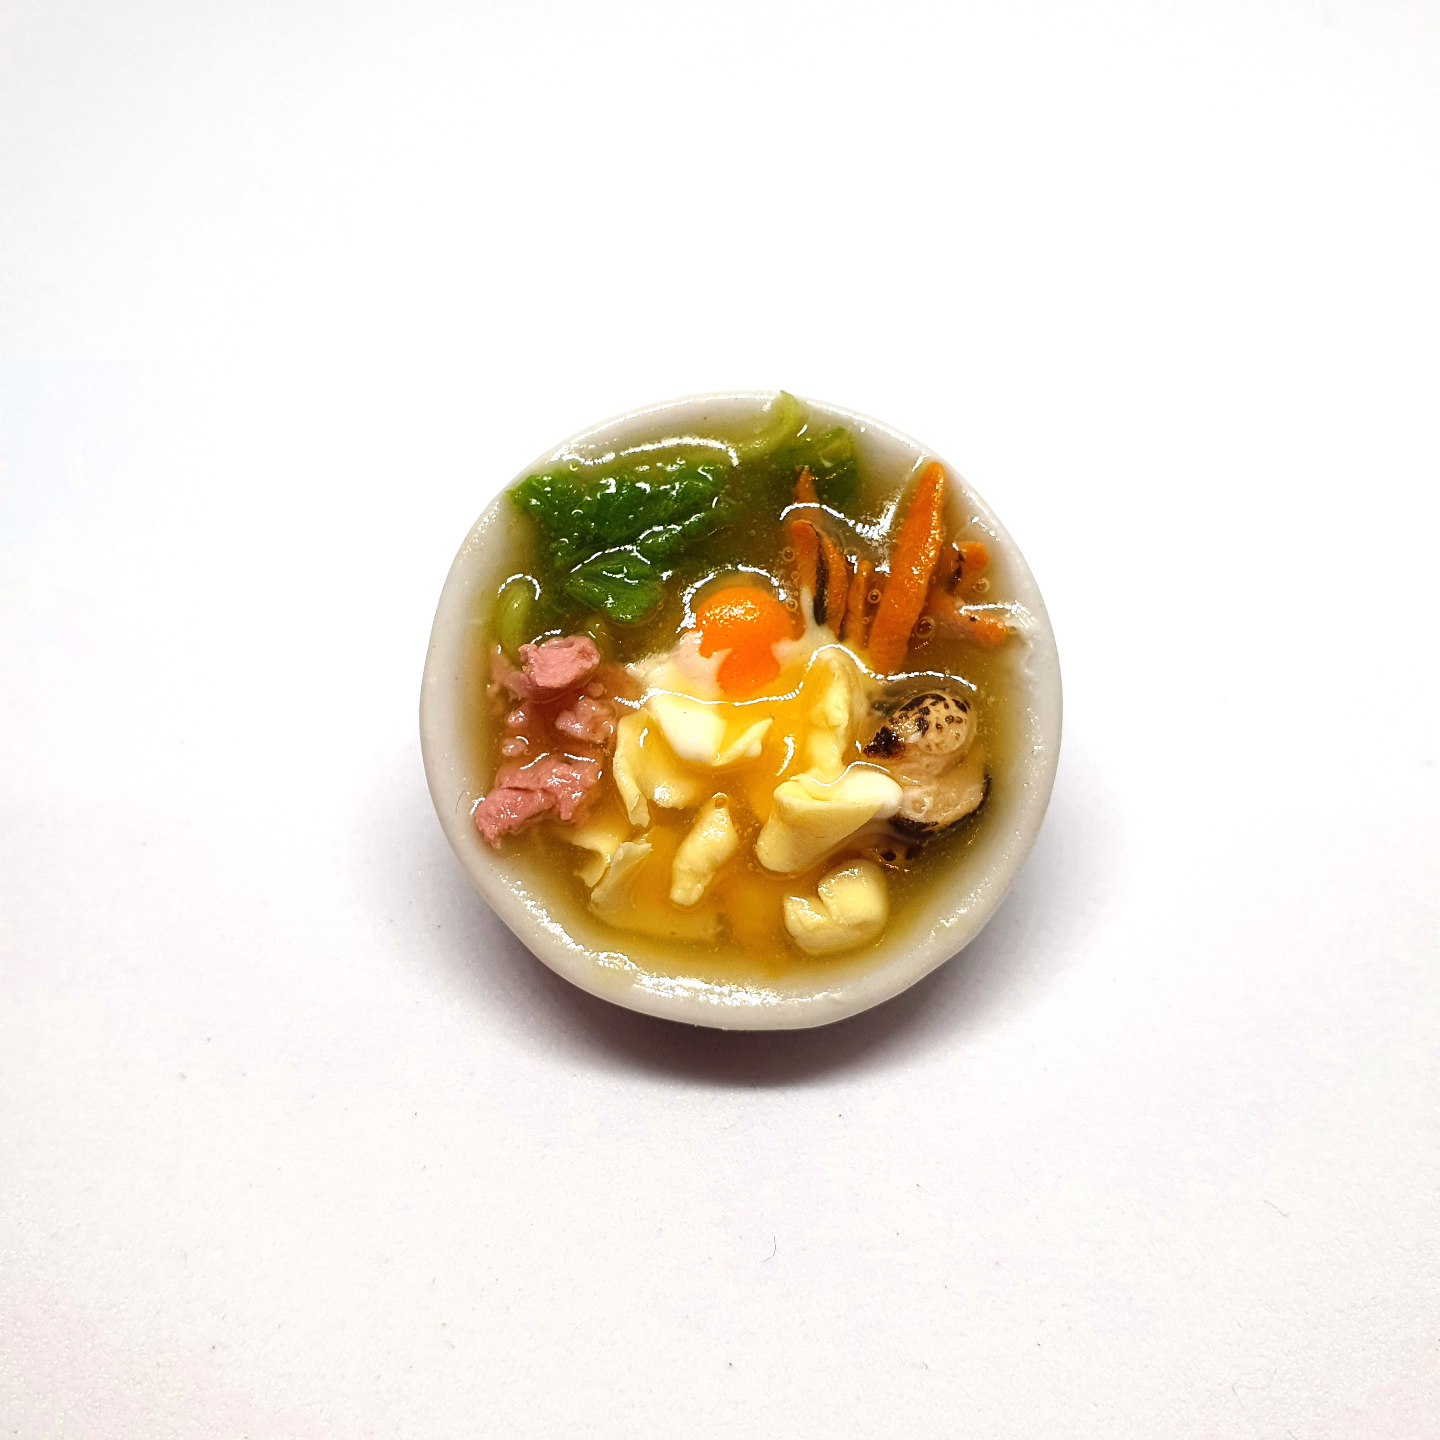 Handmade Miniature: Mee Hoon Kueh by Madam Ang Miniature World